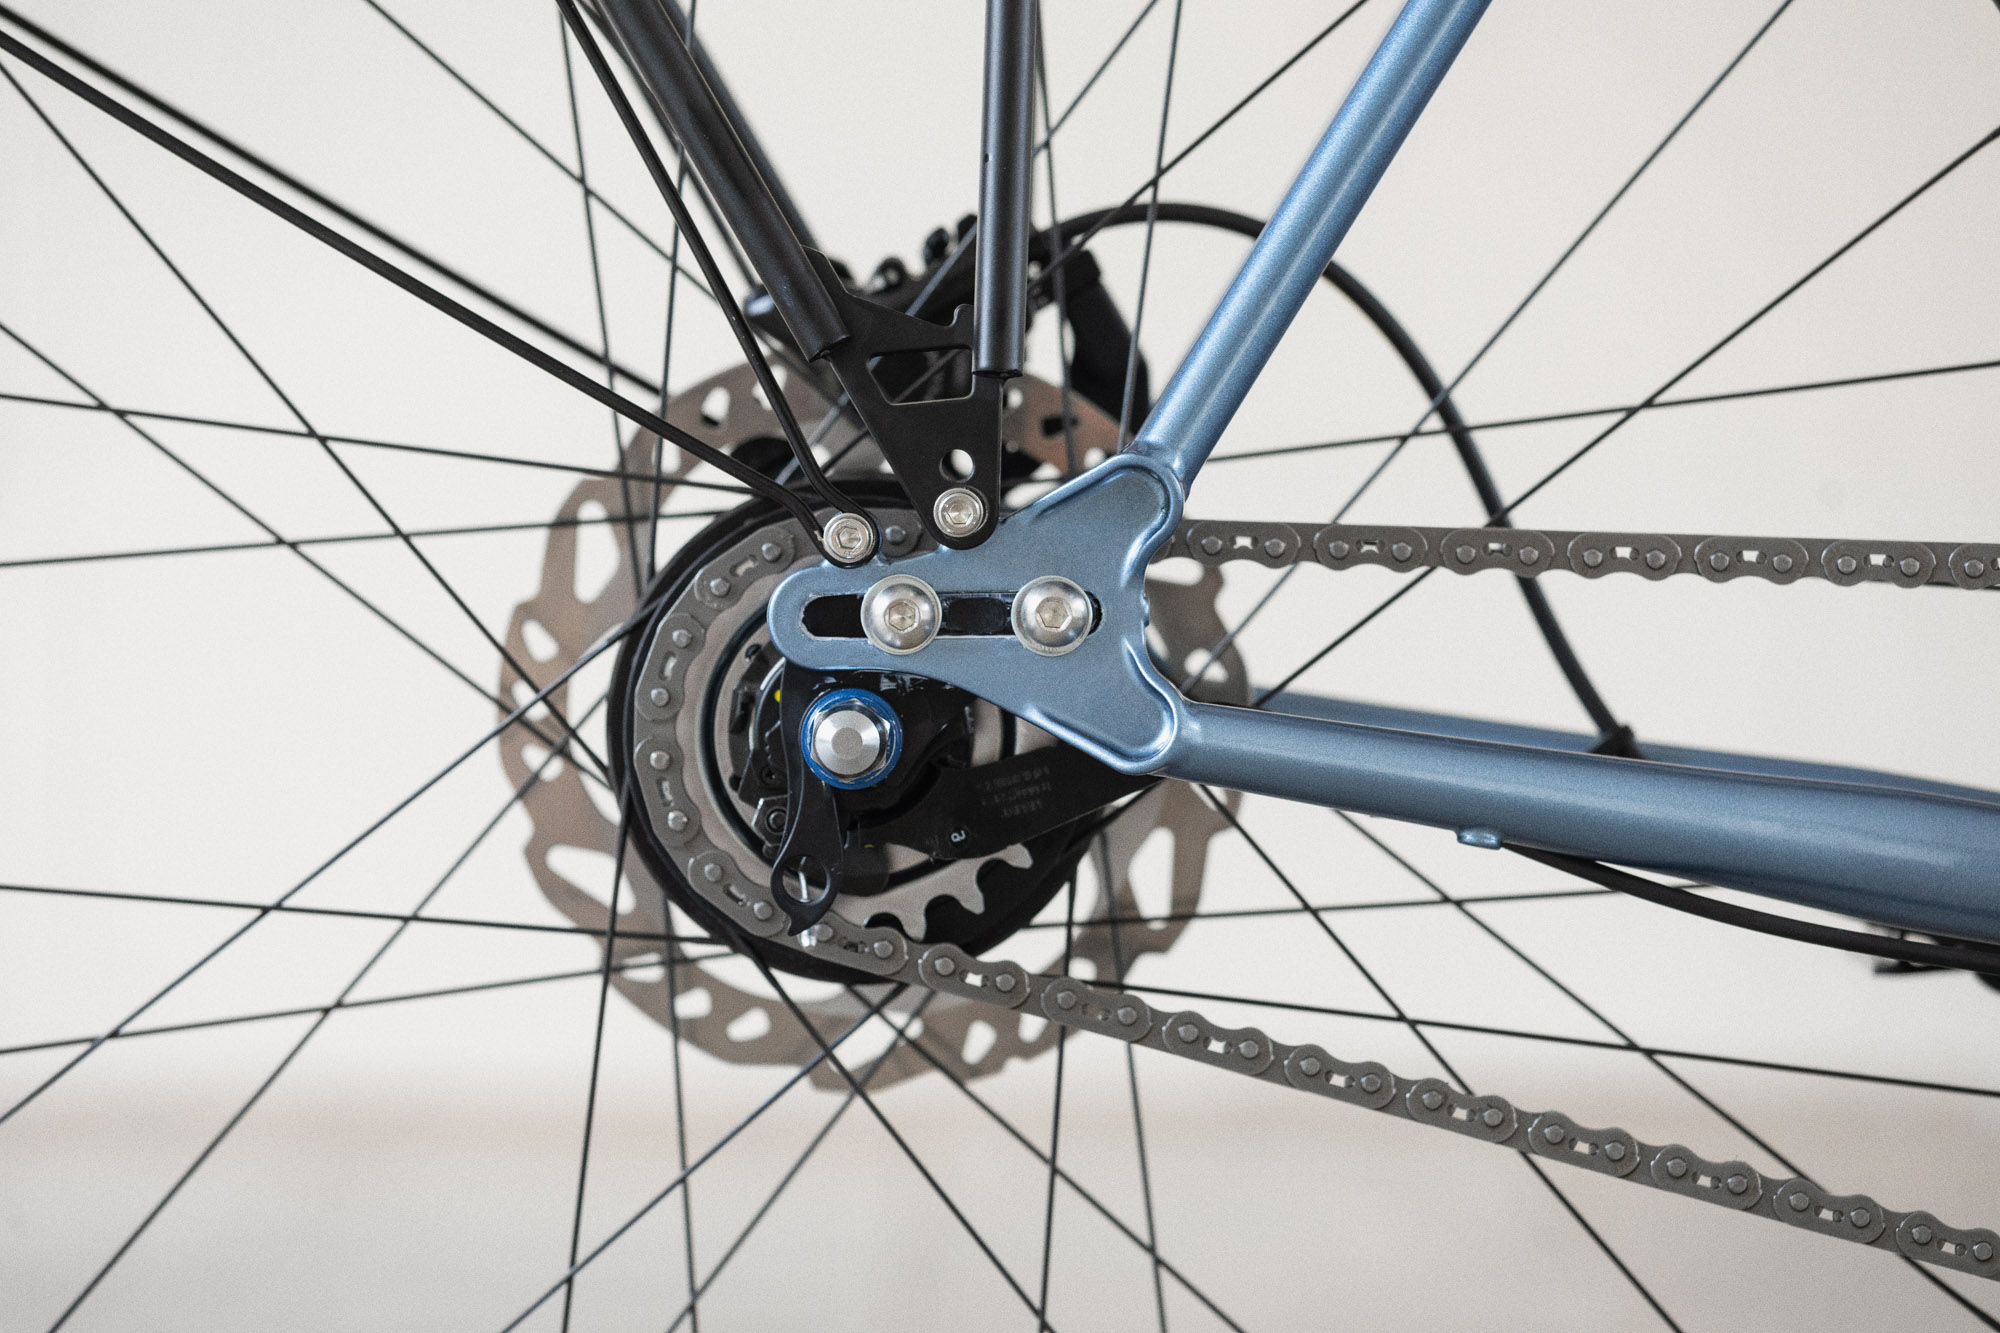 8bar-complete-bike-mitte-steel-blue-urban-lr-9